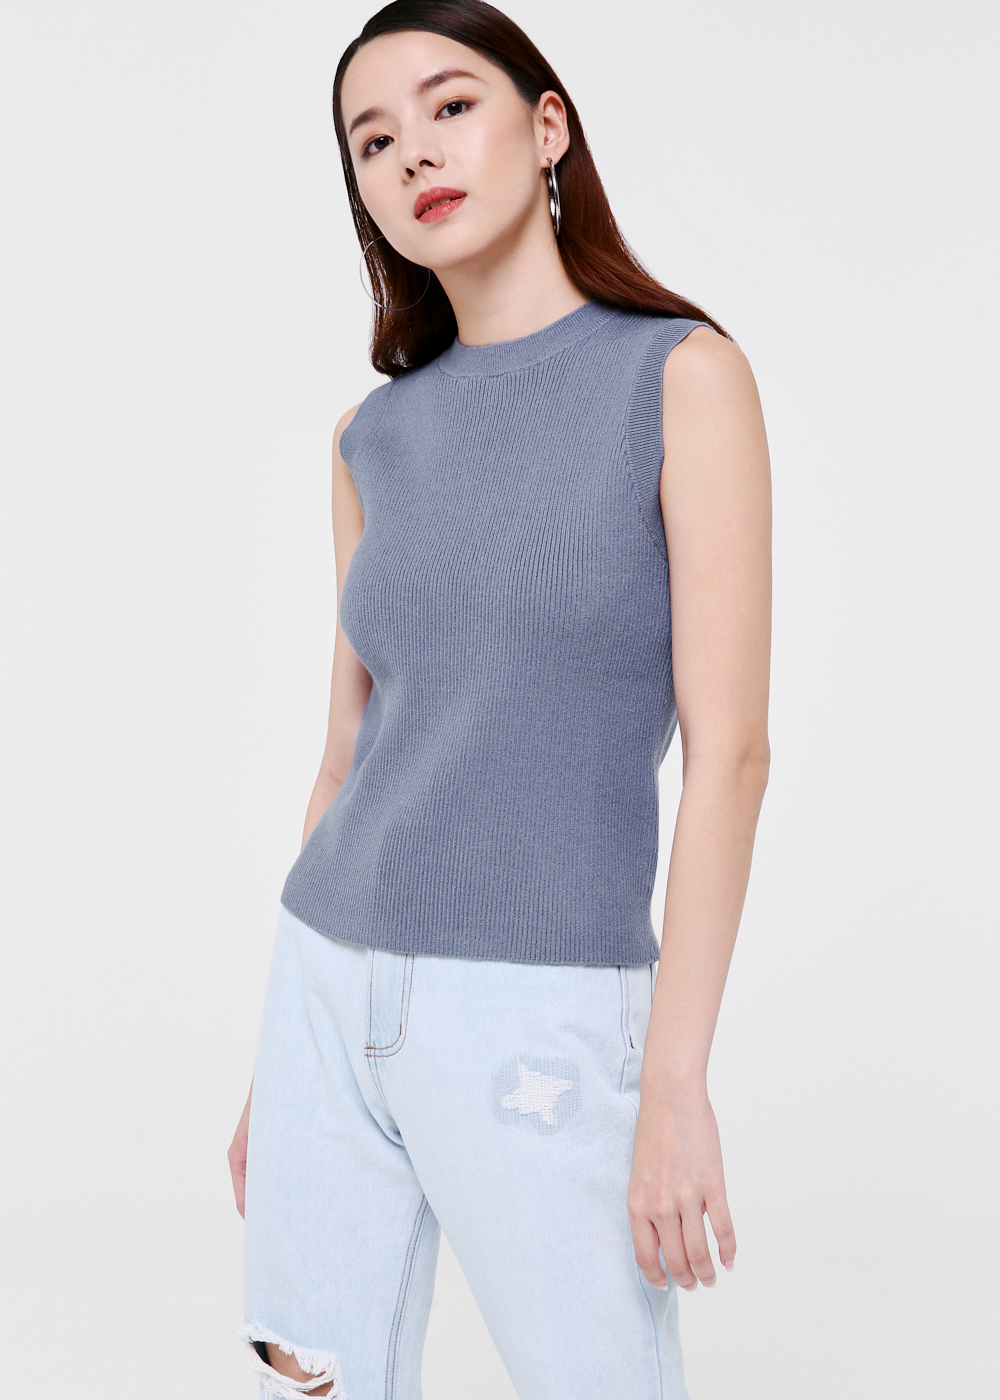 Andie Mock Neck Knit Top